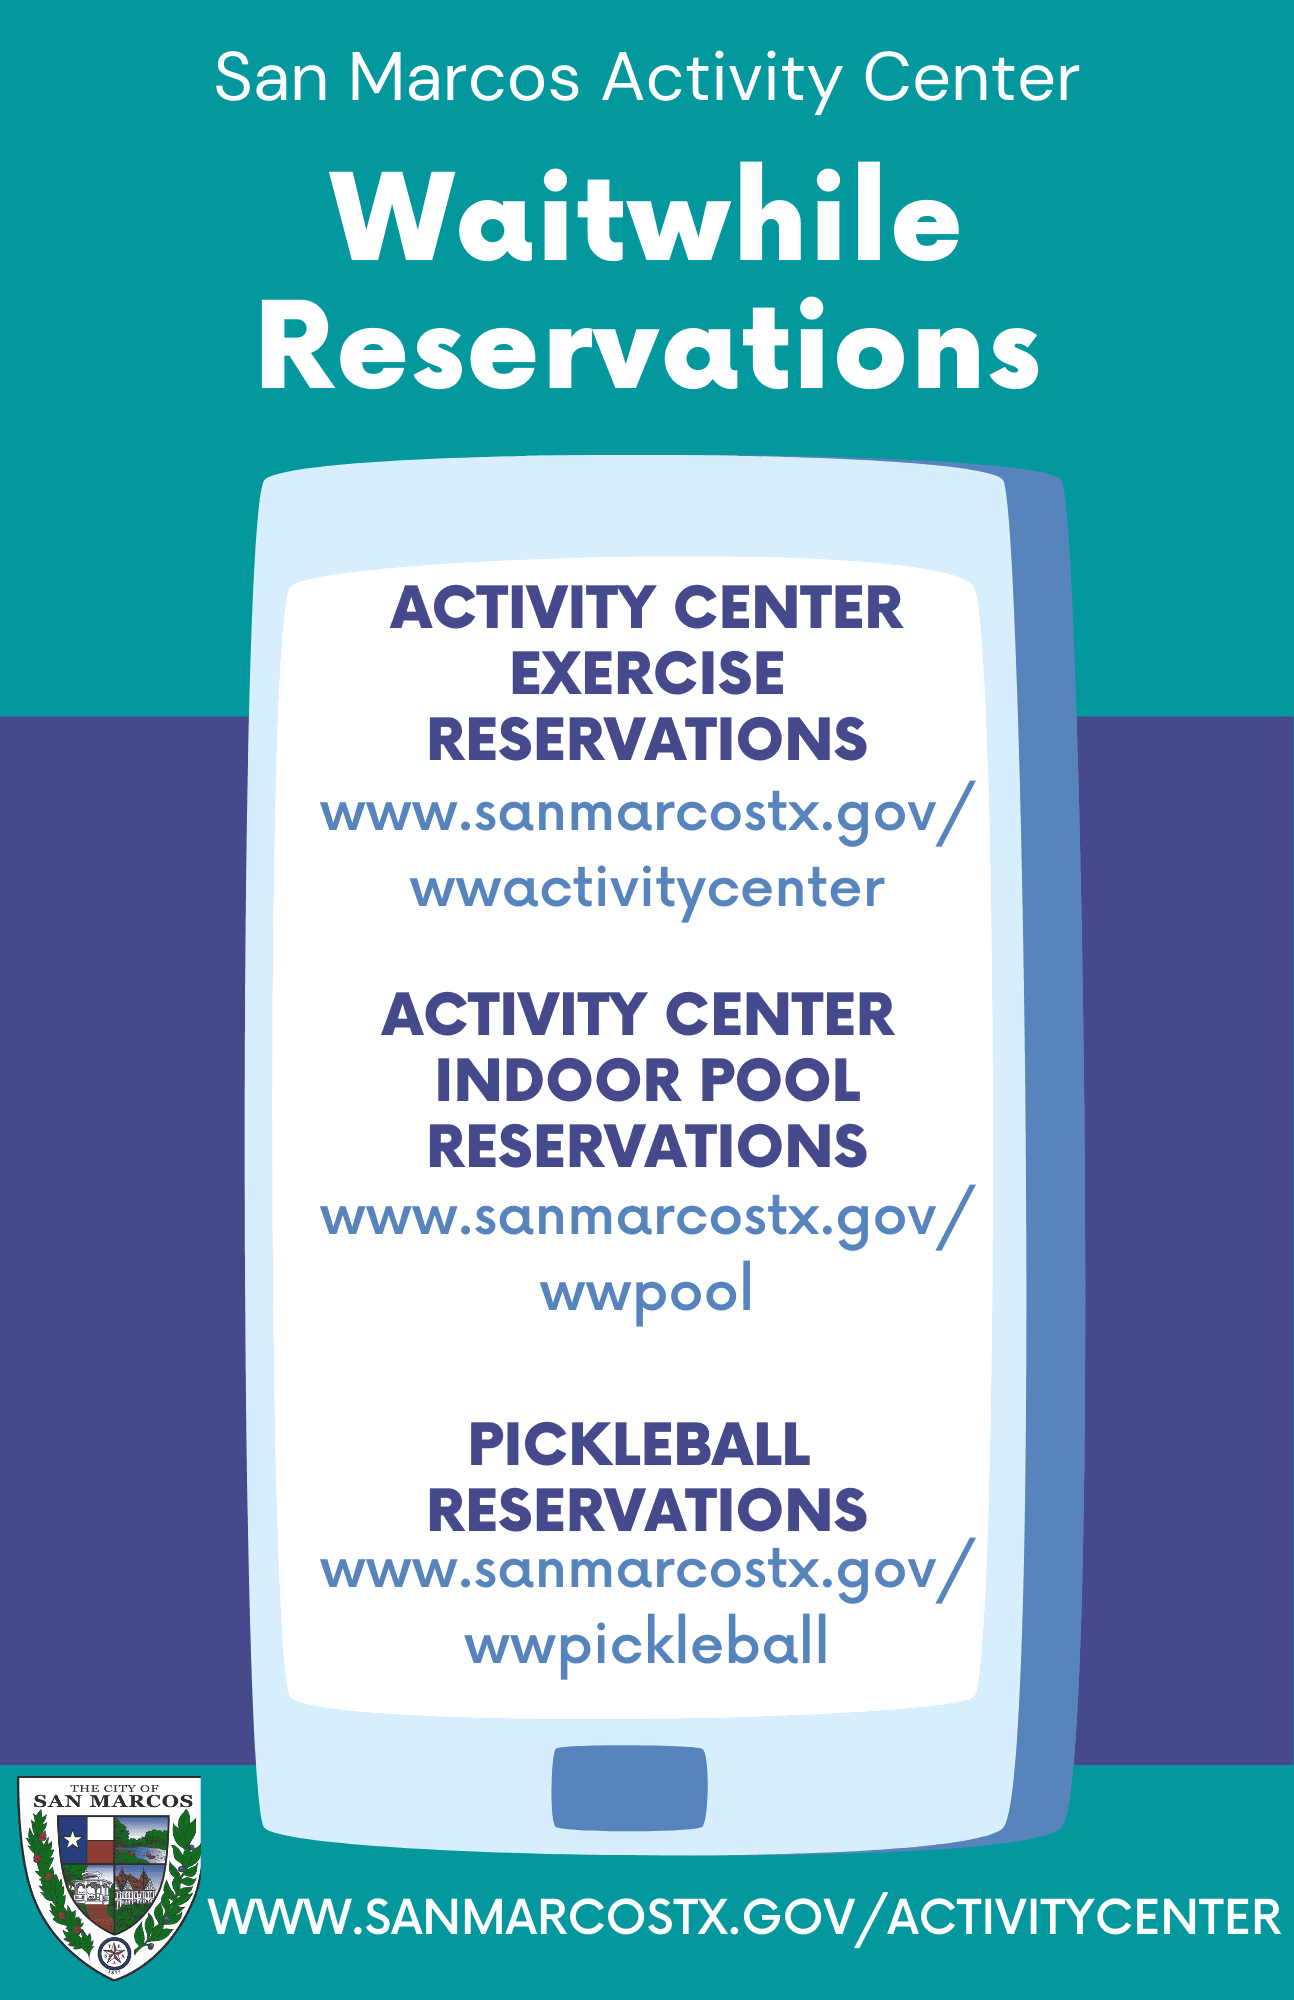 WW reservation flyer Opens in new window